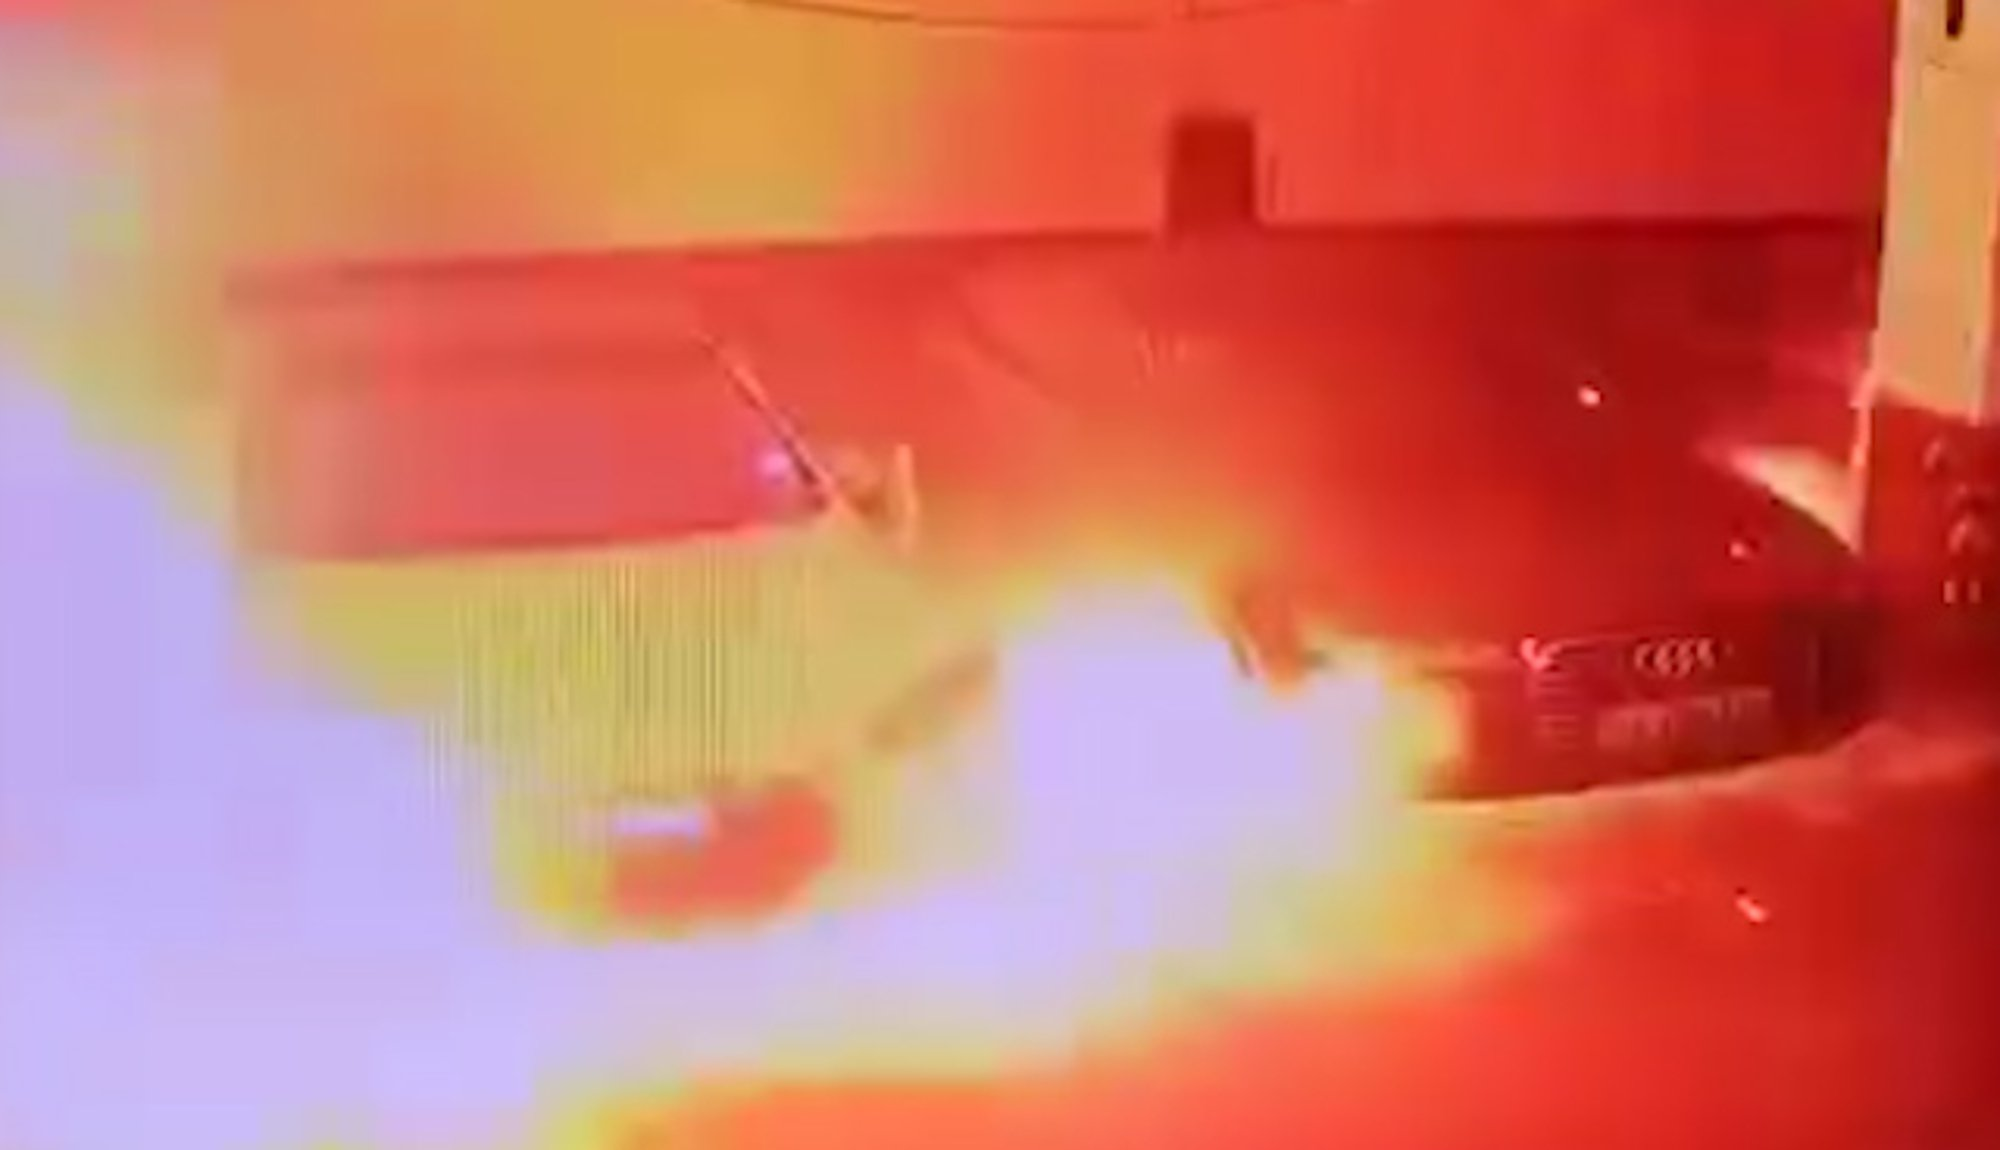 Pic shows: The Tesla blazing in a automobile park. CHINA: This viral video noticed some-more than 10 million times shows a Tesla Model S left in a automobile park unexpected throwing glow and bursting yet warning.